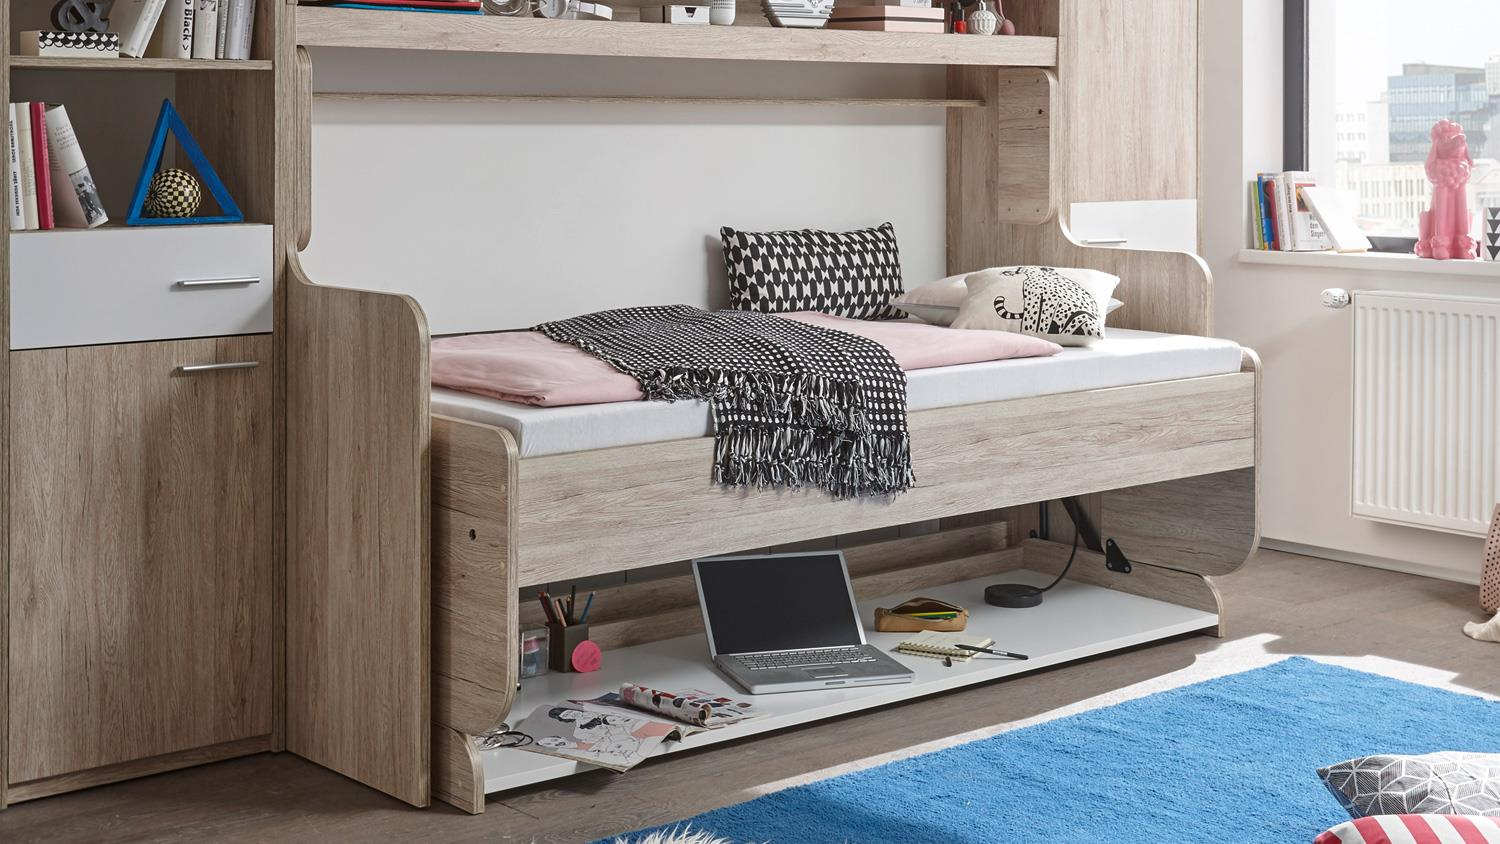 klappbett funktionsbett dakota schreibtisch schrank eiche san remo wei. Black Bedroom Furniture Sets. Home Design Ideas